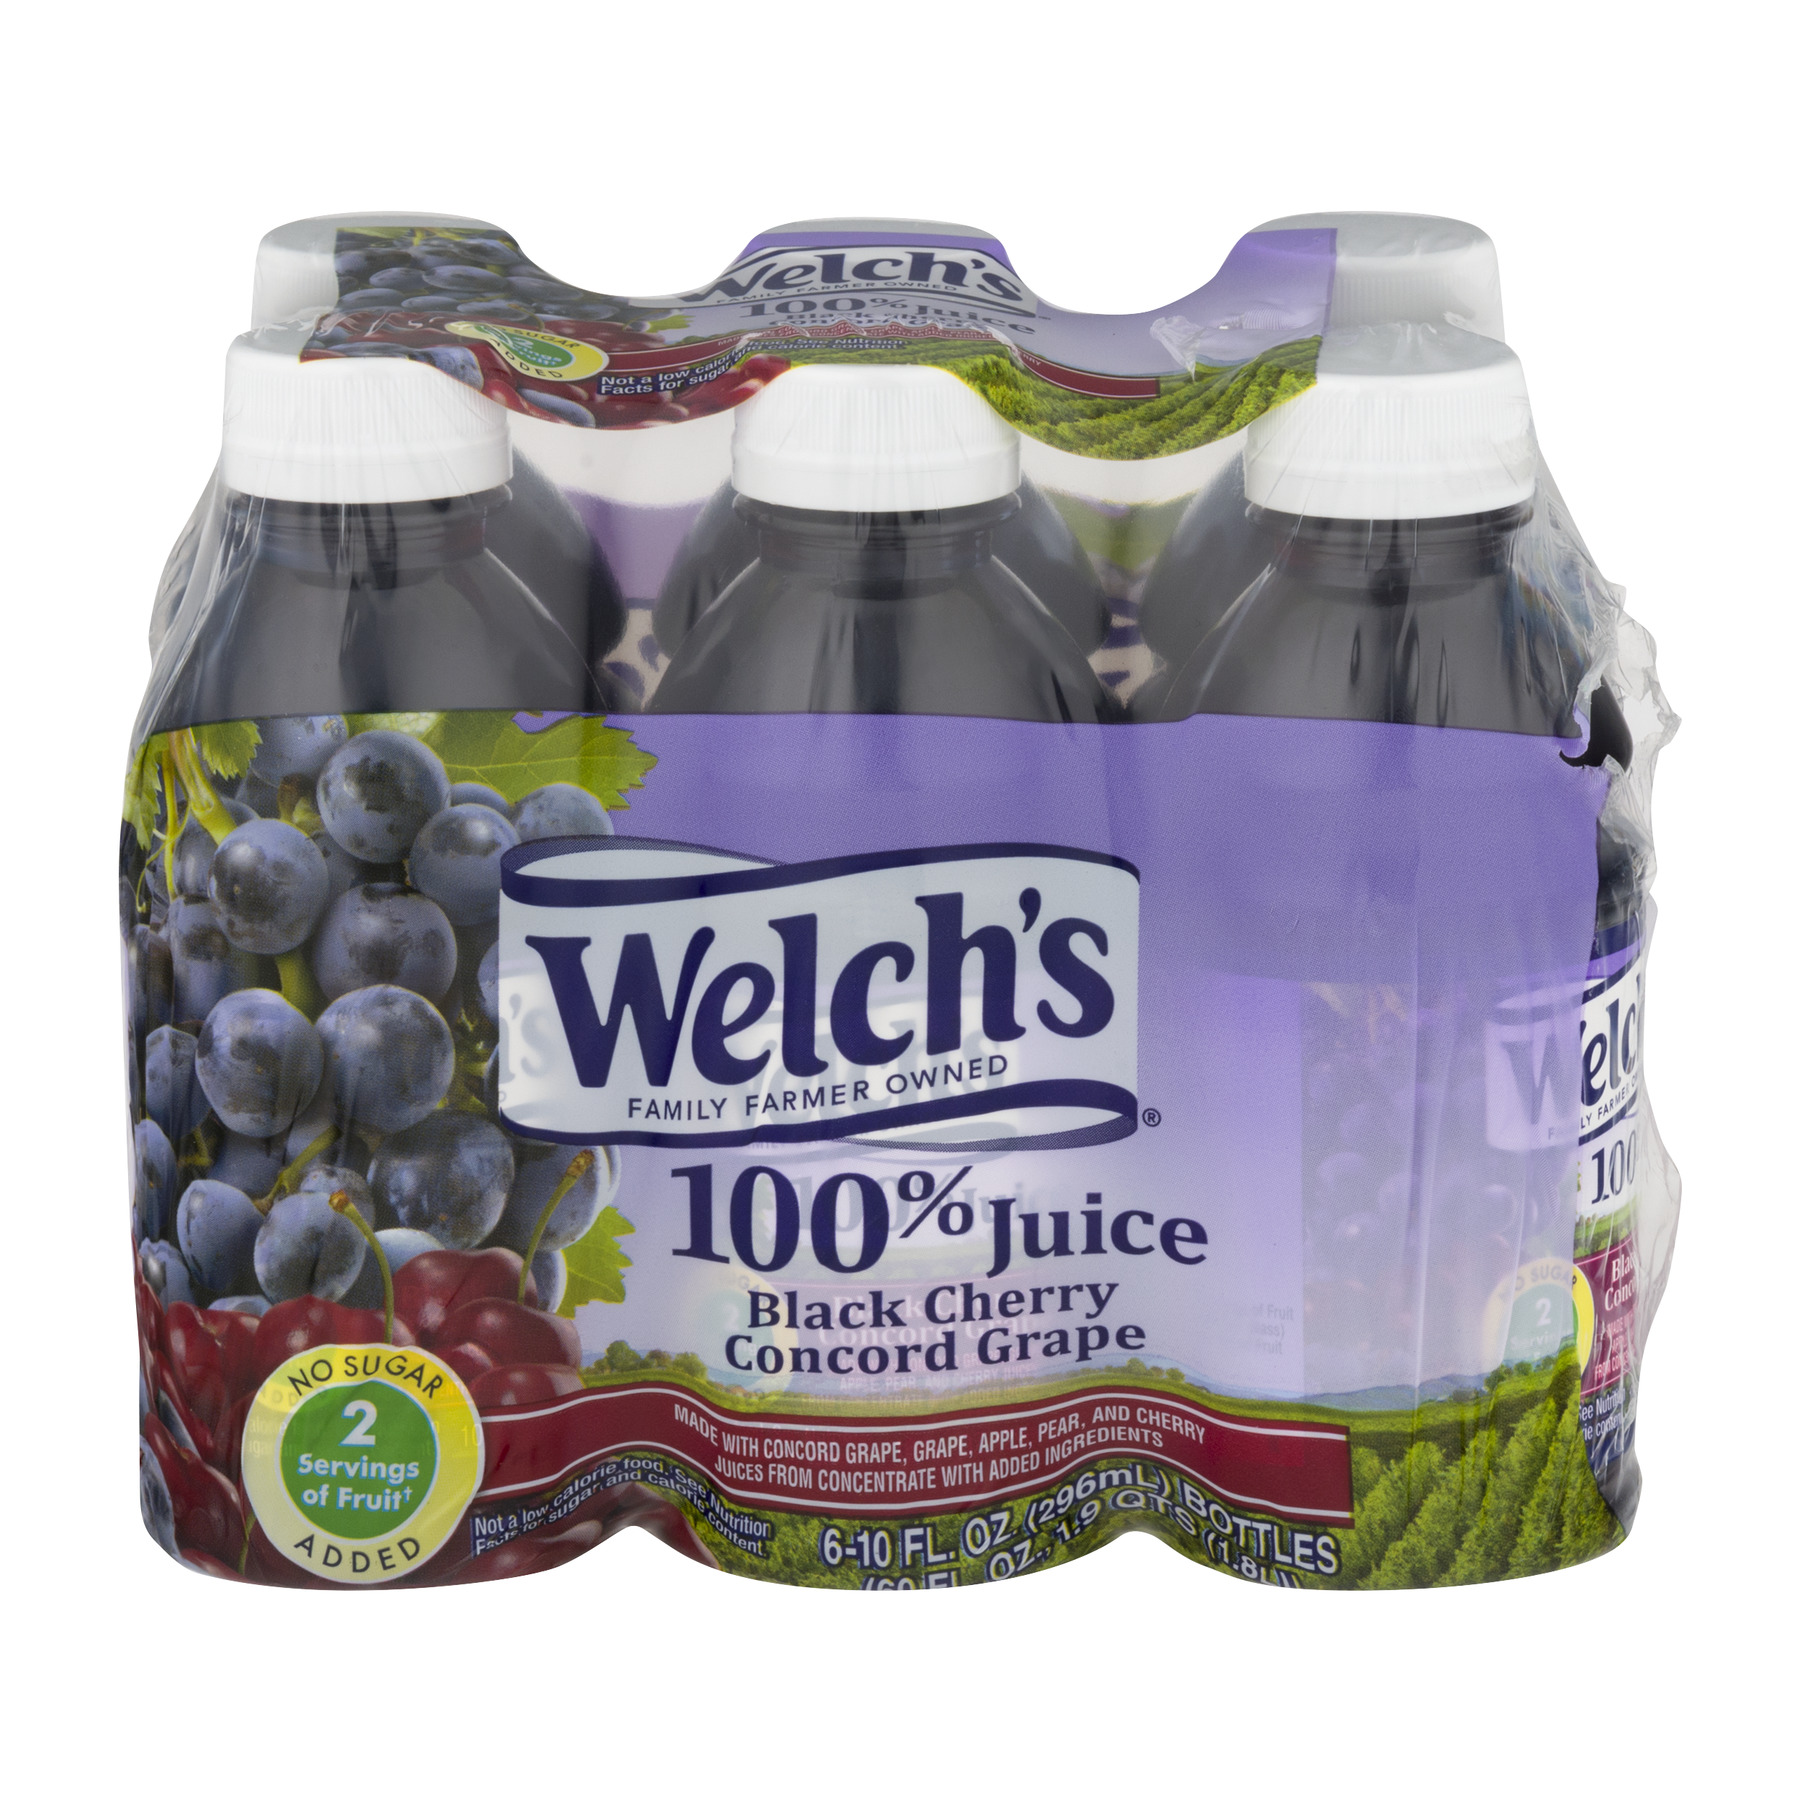 Welch's 100% Juice, Black Cherry Concord Grape, 10 Fl Oz, 6 Count